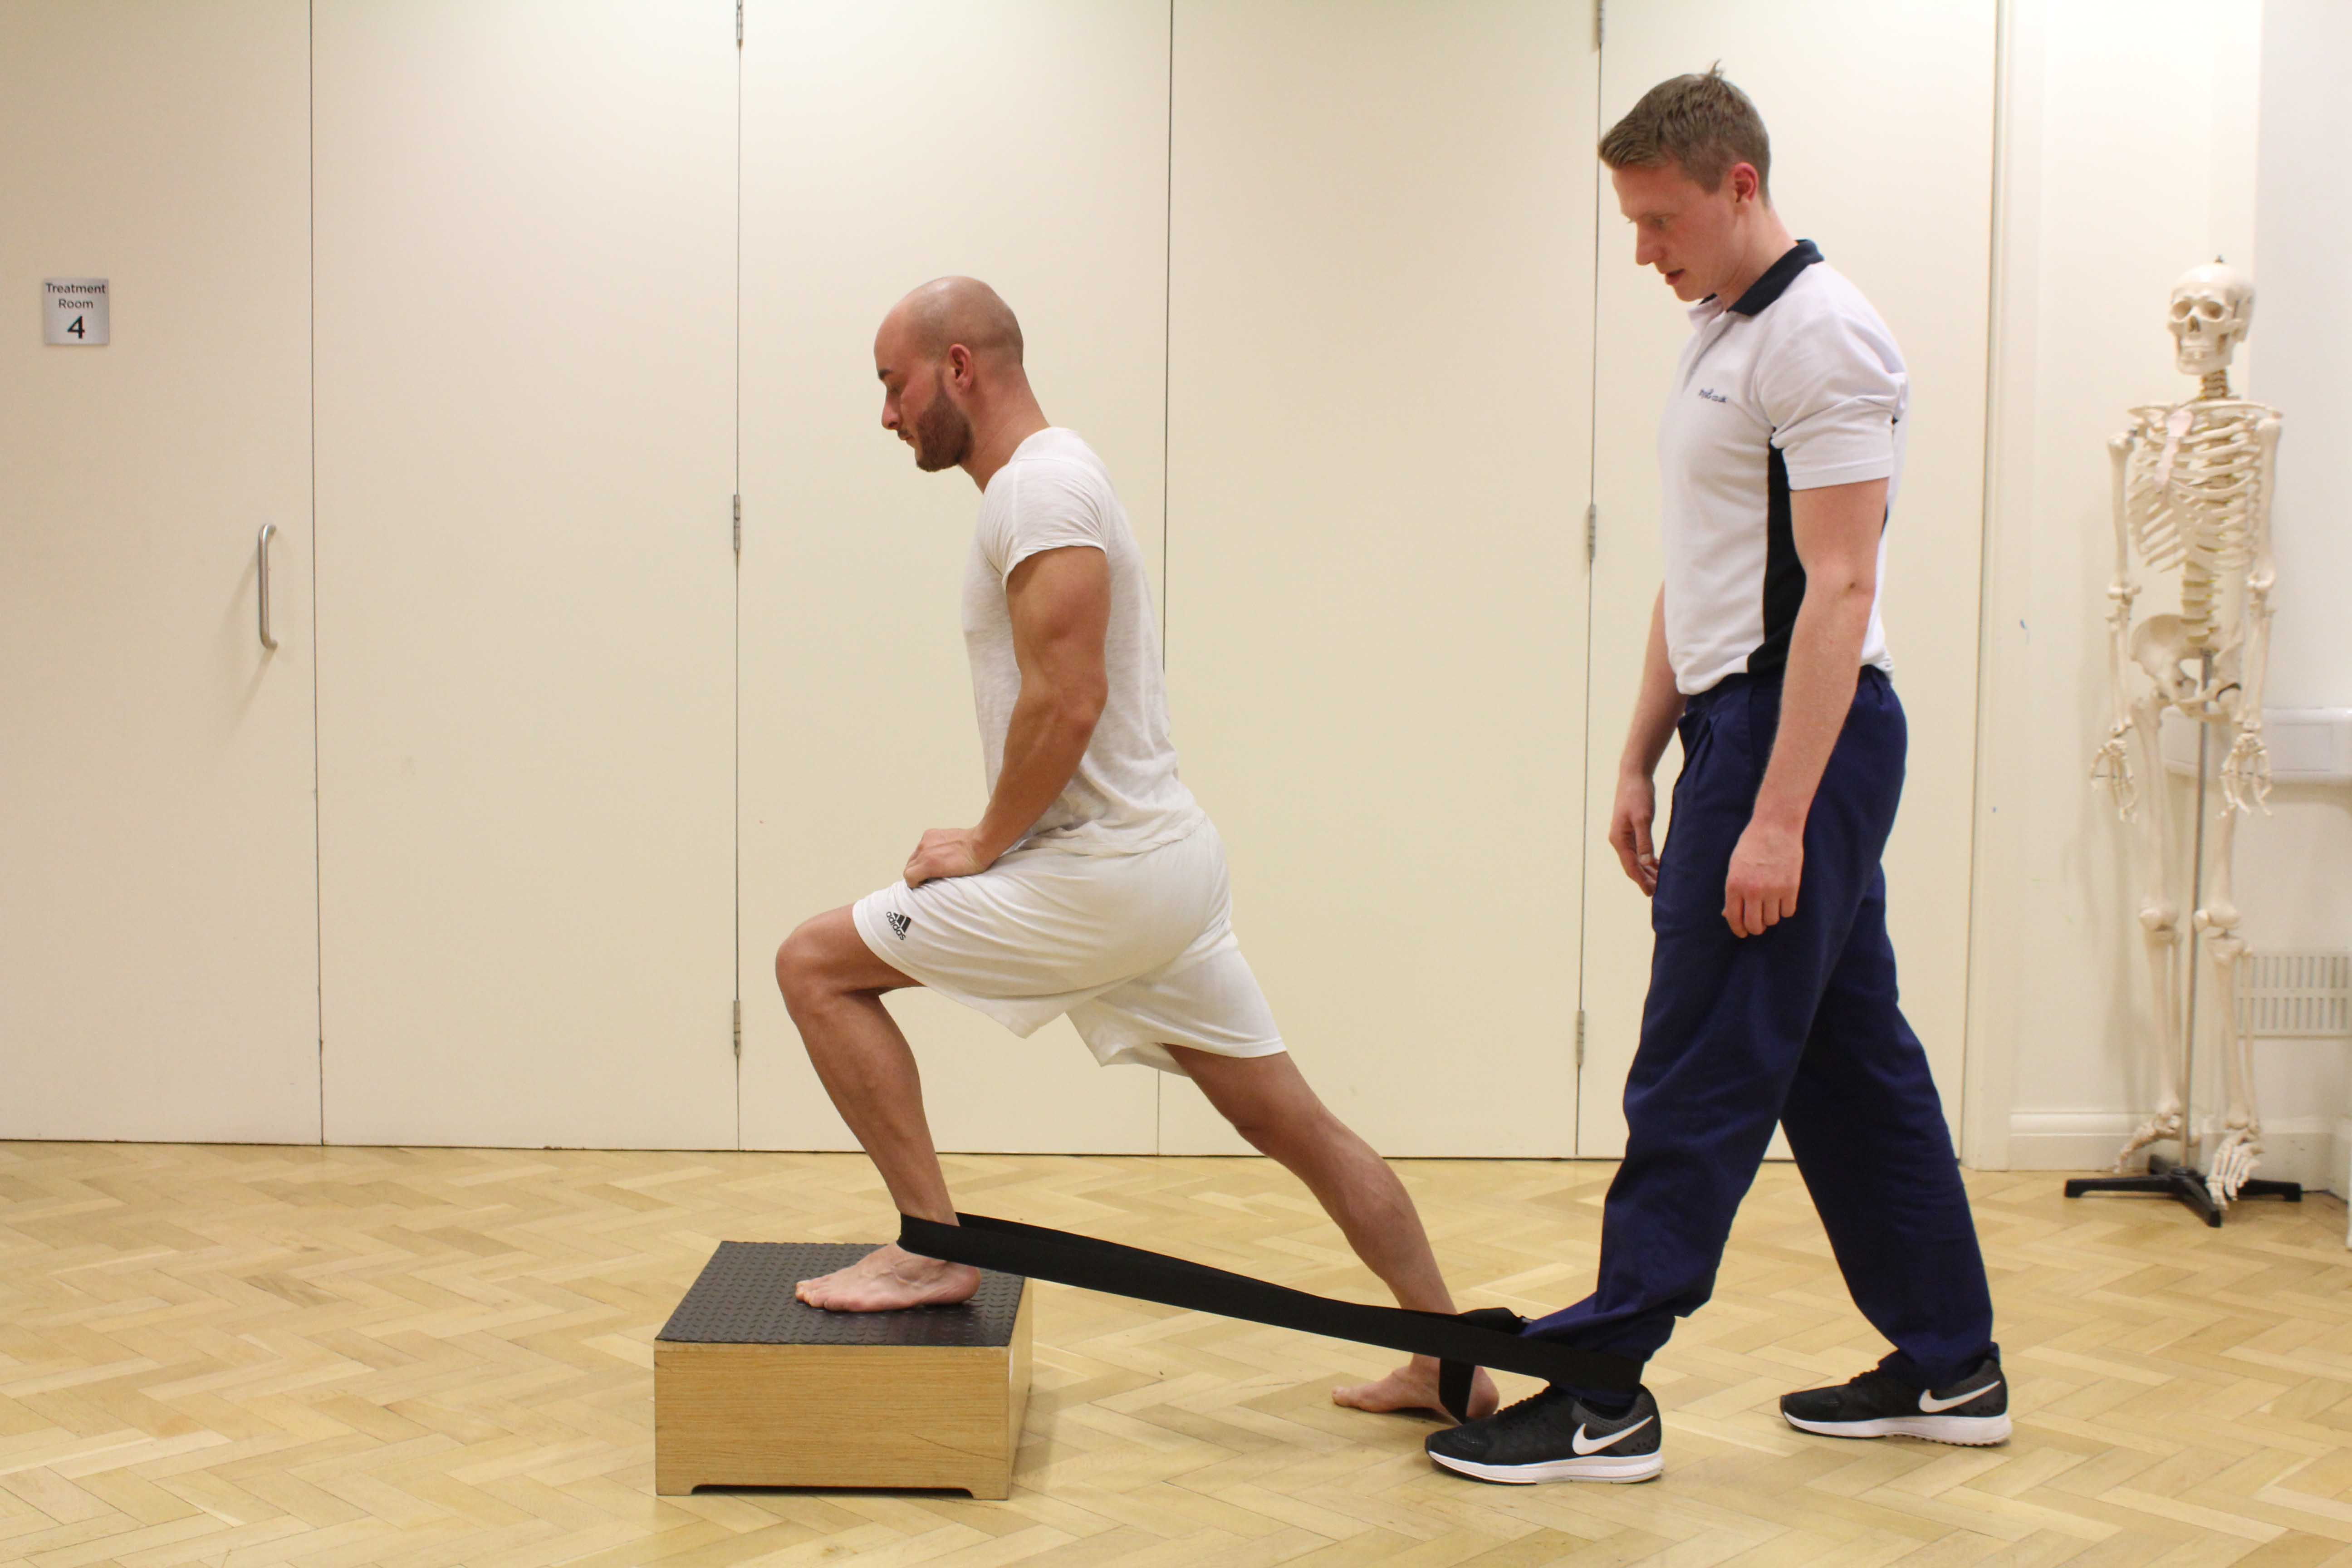 Balance and co-ordination exercises using island blocks